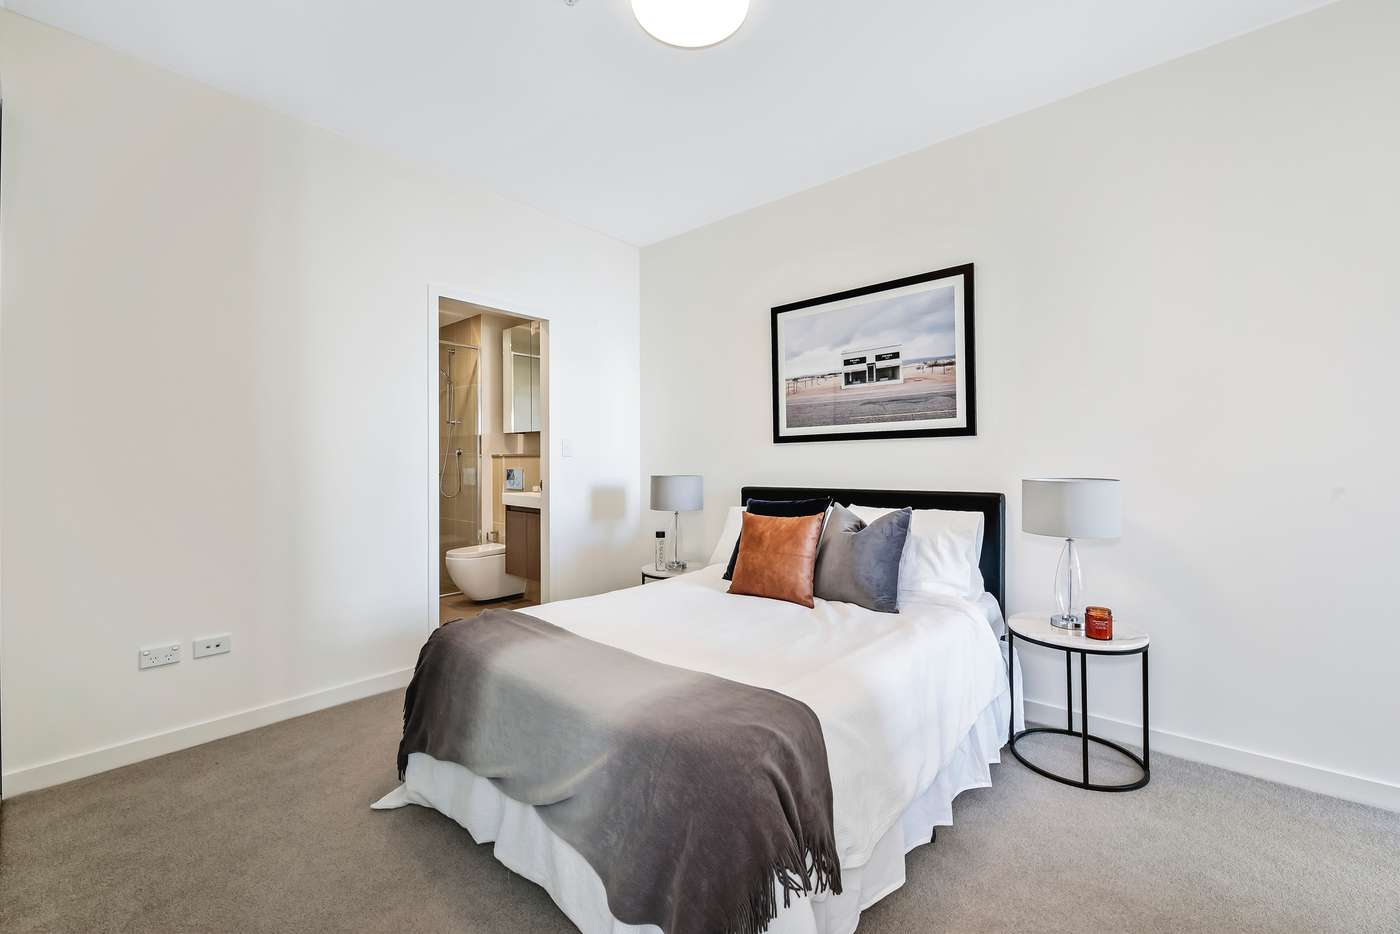 Sixth view of Homely apartment listing, 1202/23 Treacy Street, Hurstville NSW 2220